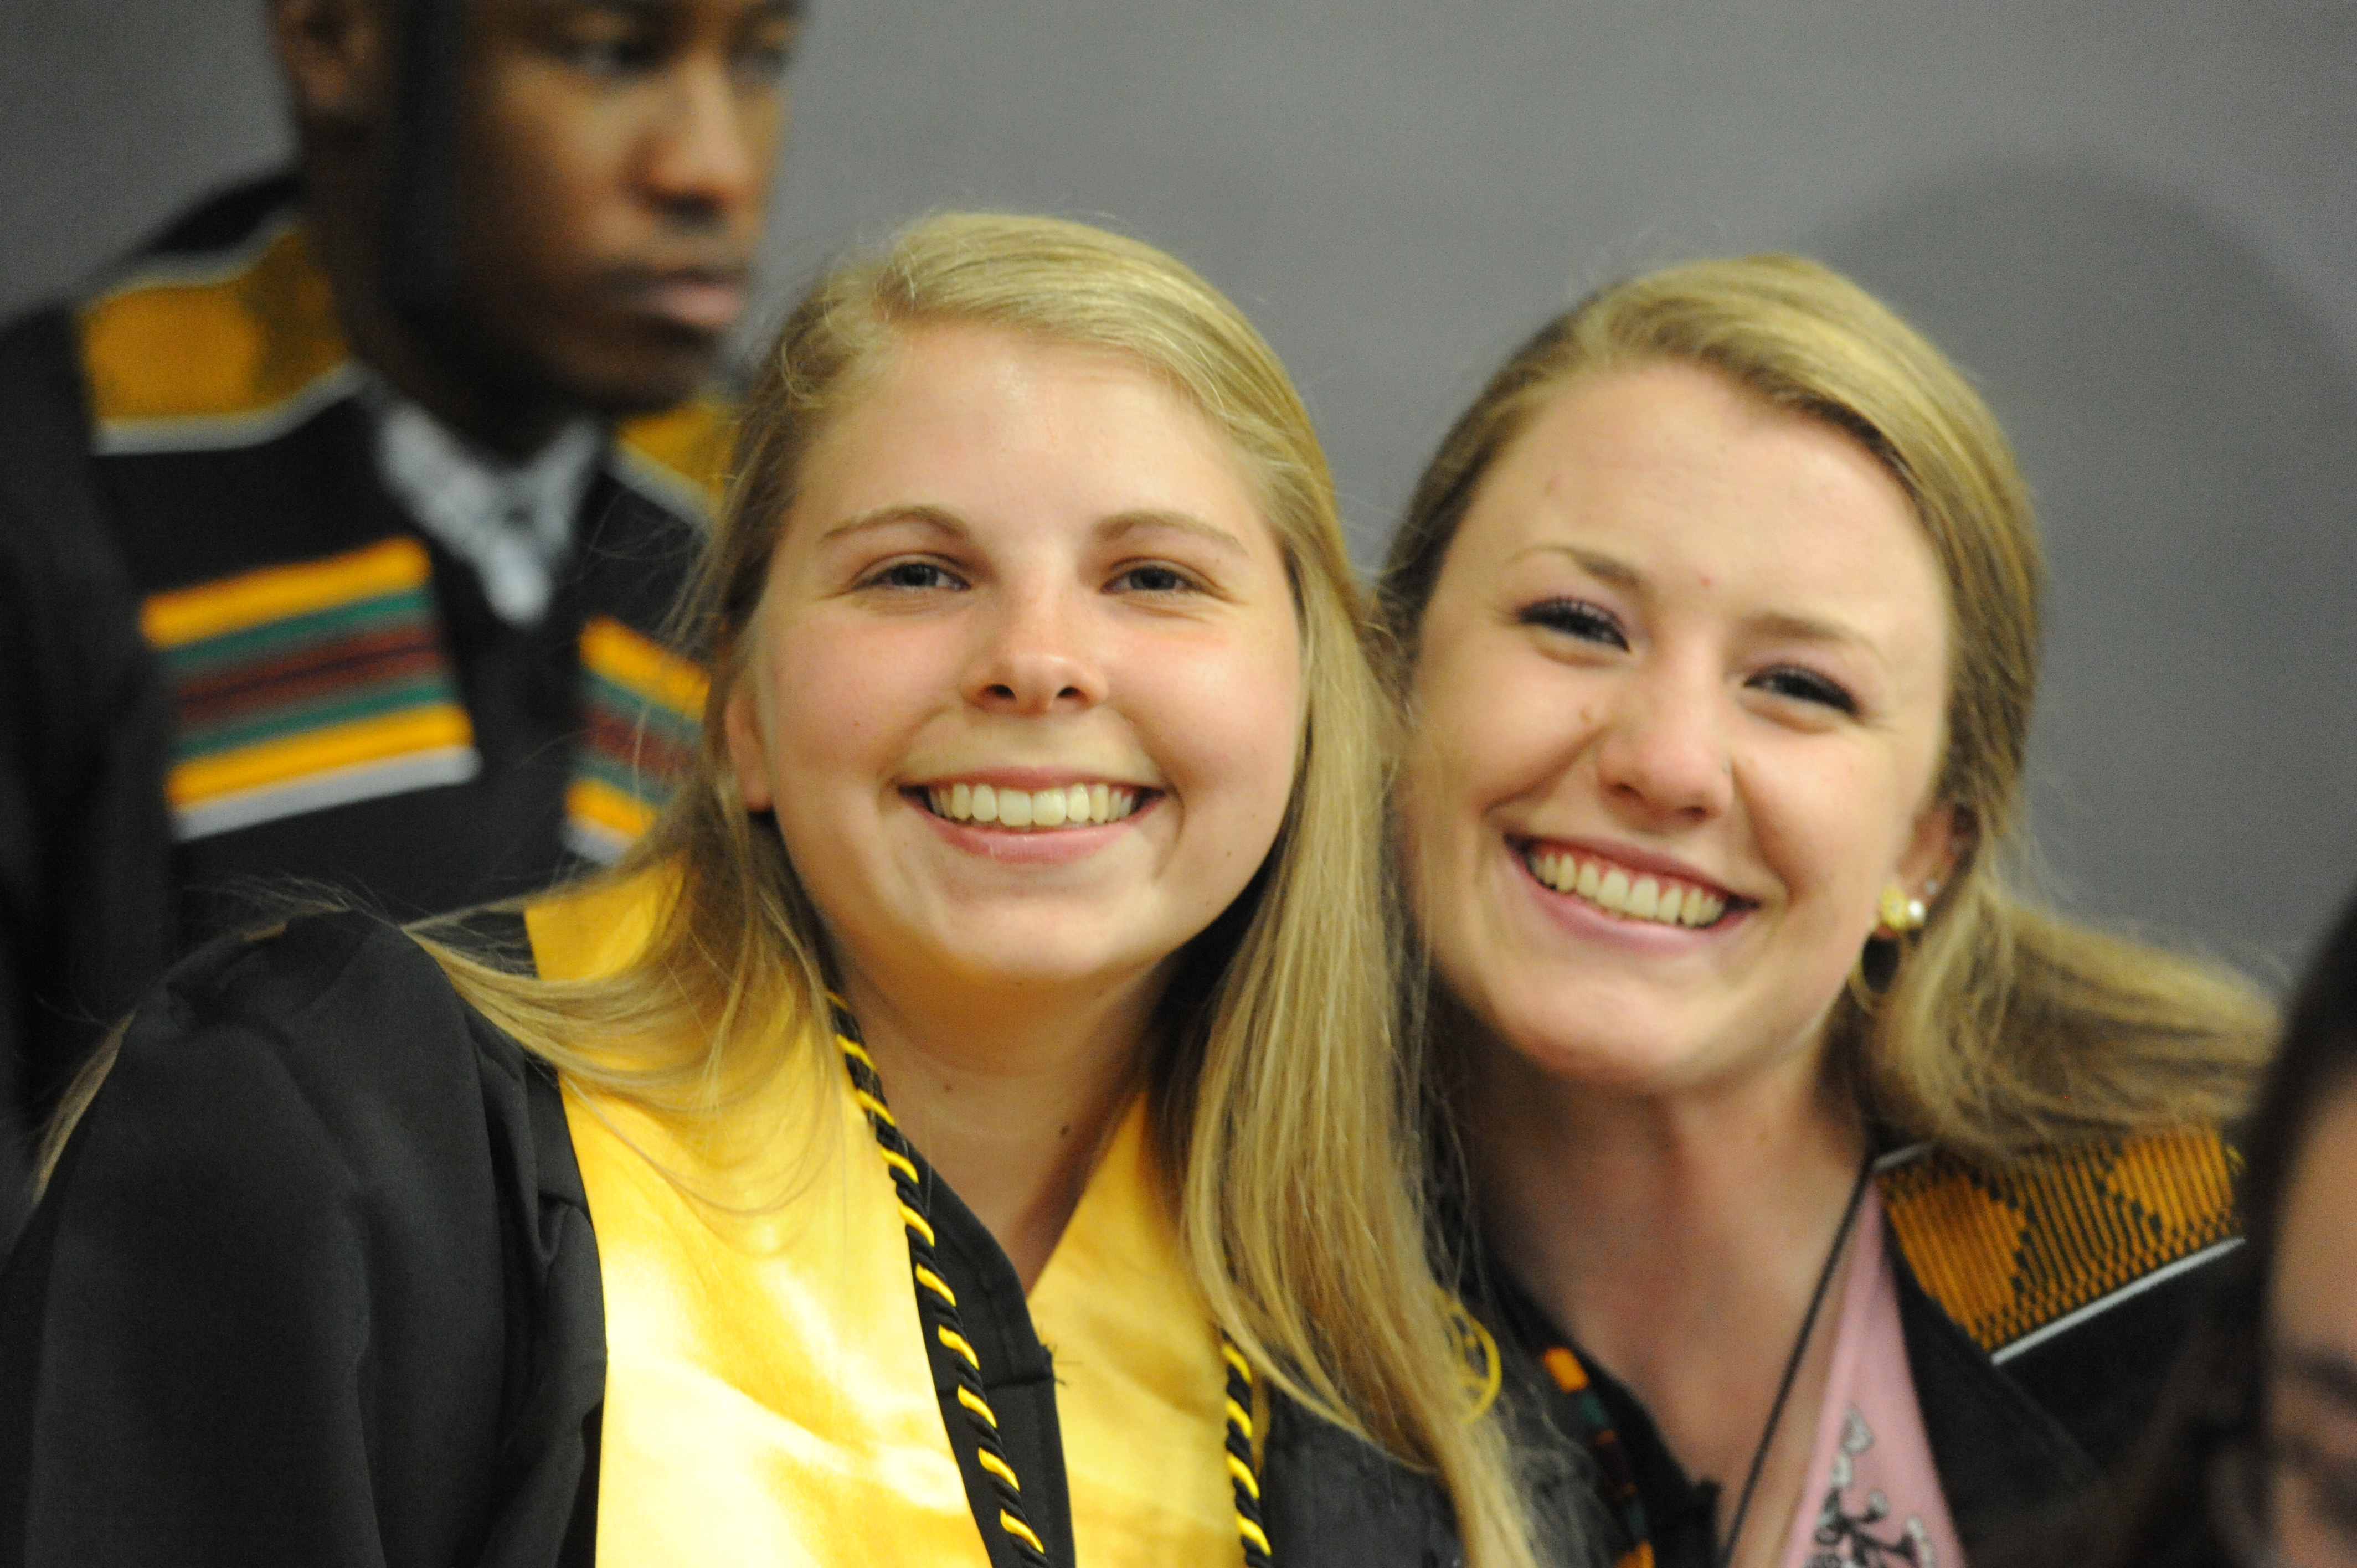 Two female graduates smile and pose for the camera